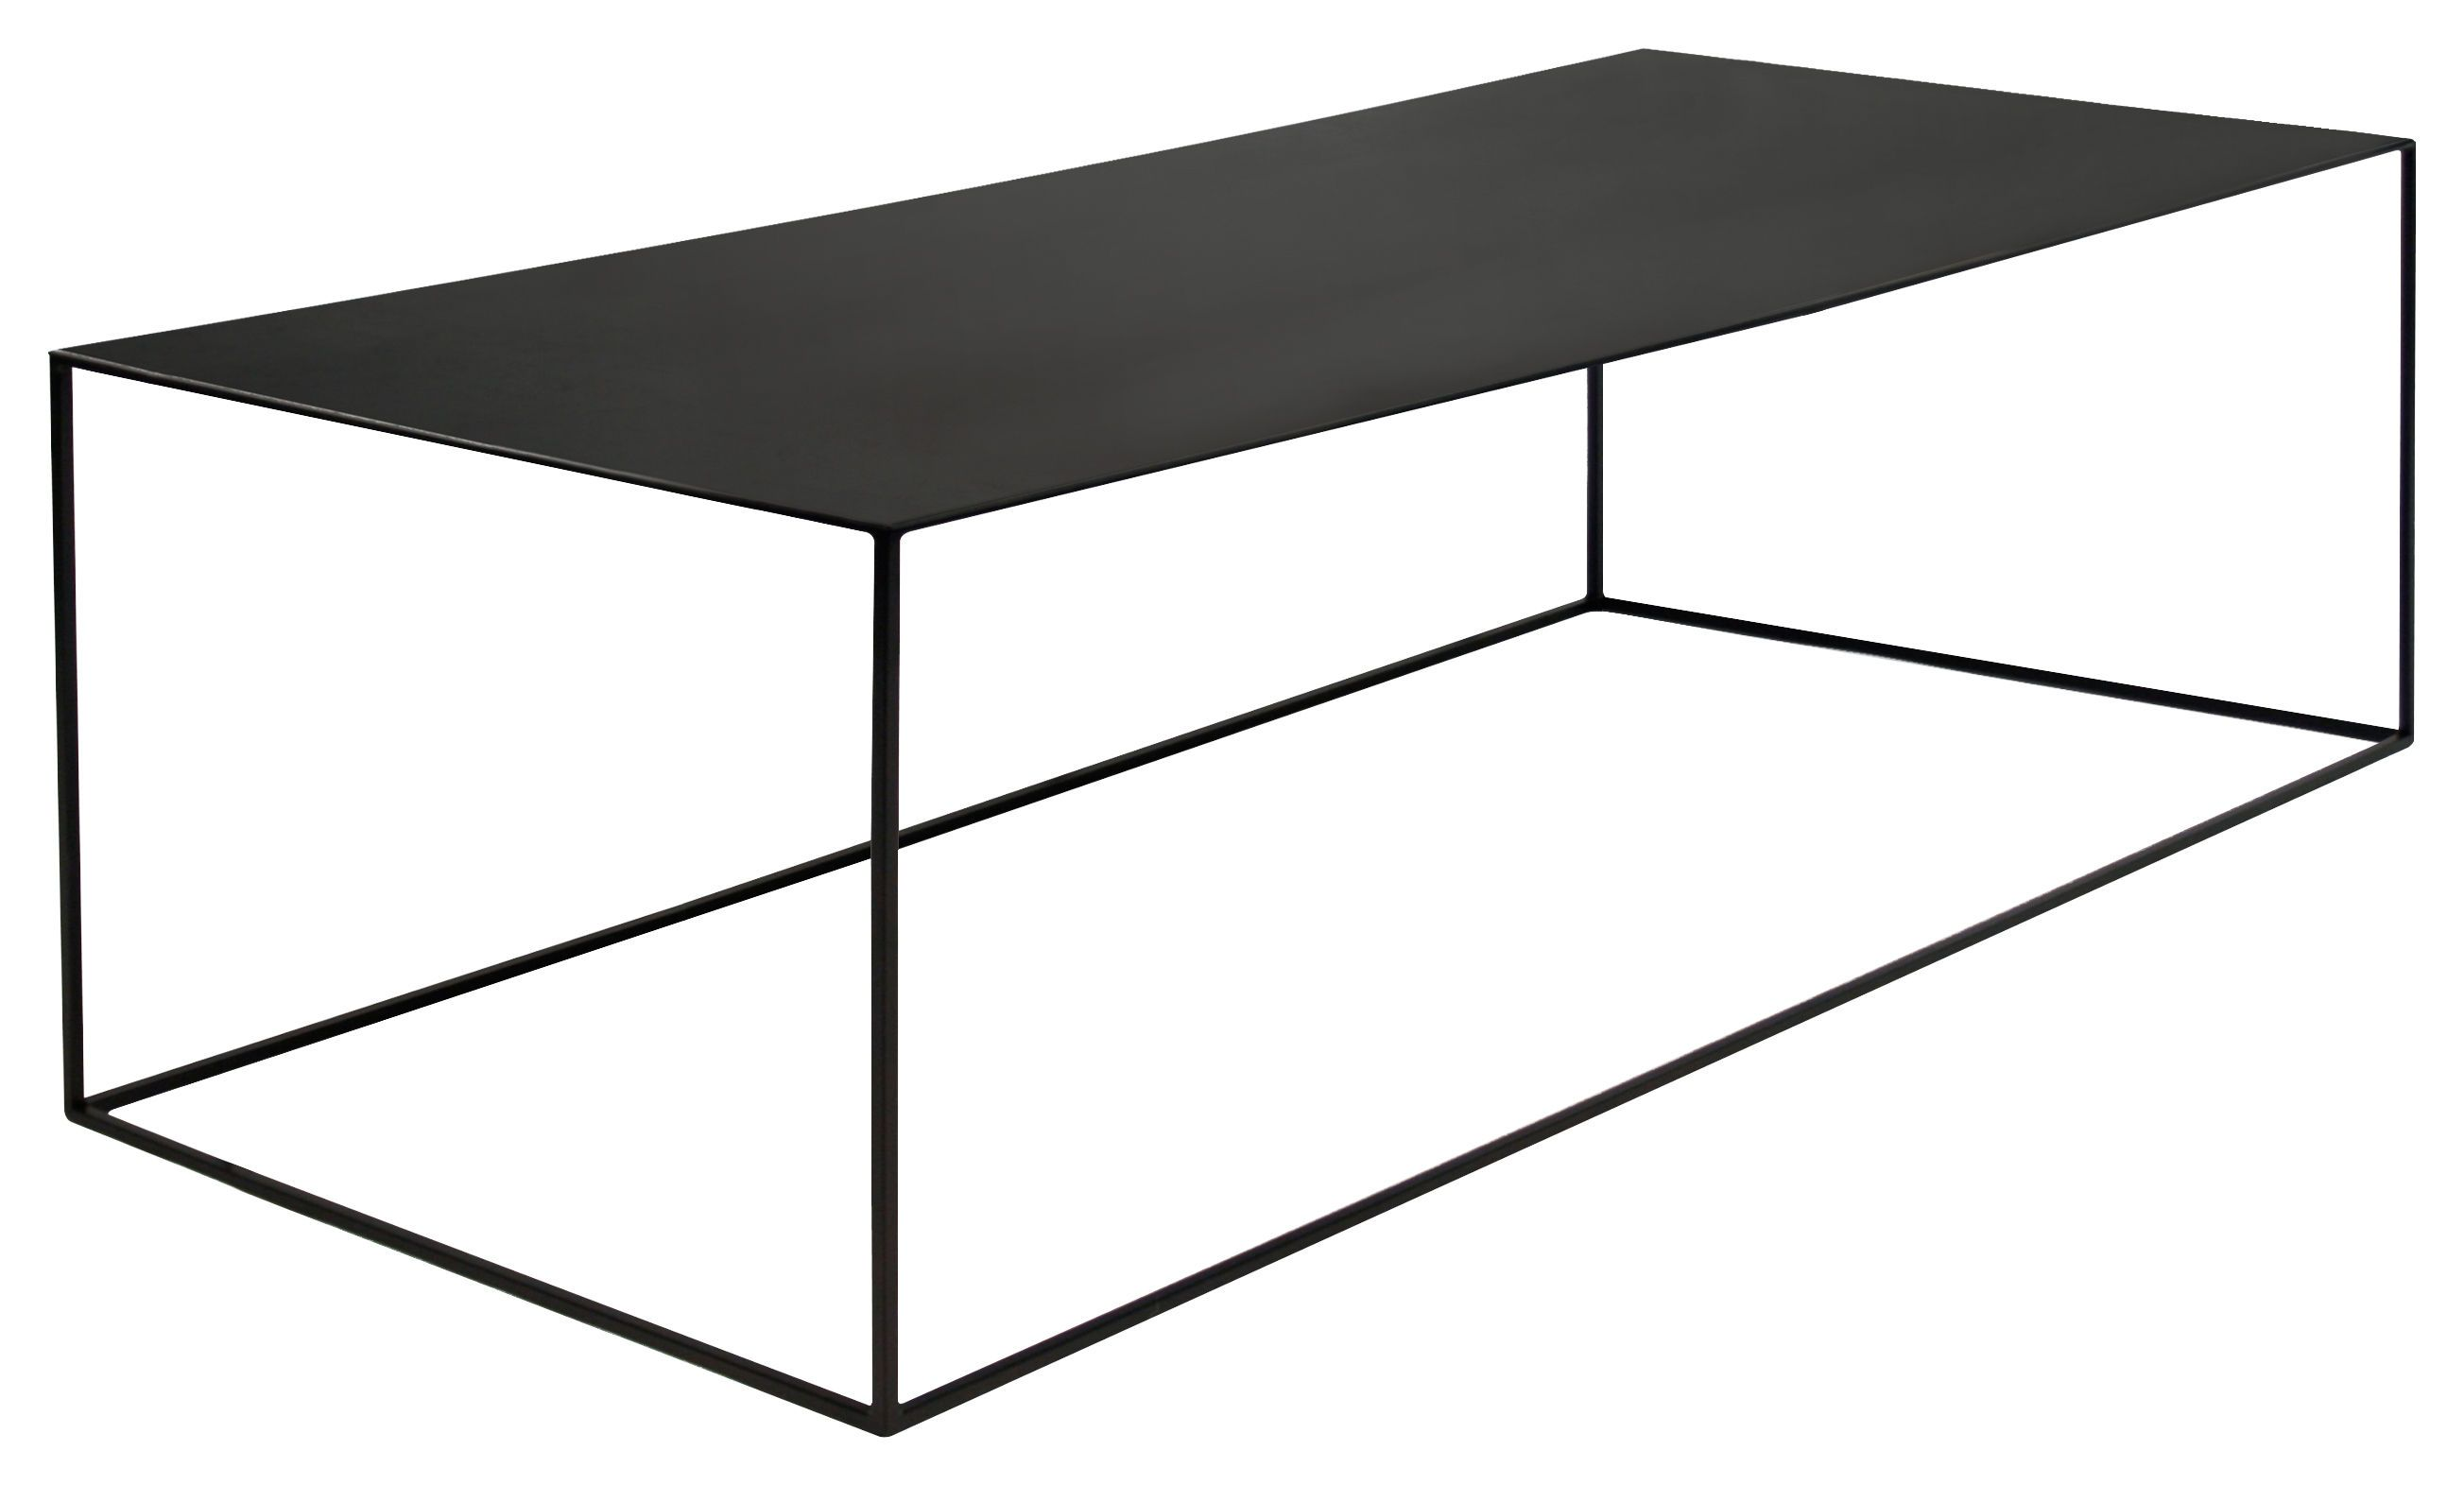 Slim Irony Couchtisch Slim Irony Coffee Table Black Steel By Zeus Design Furniture And